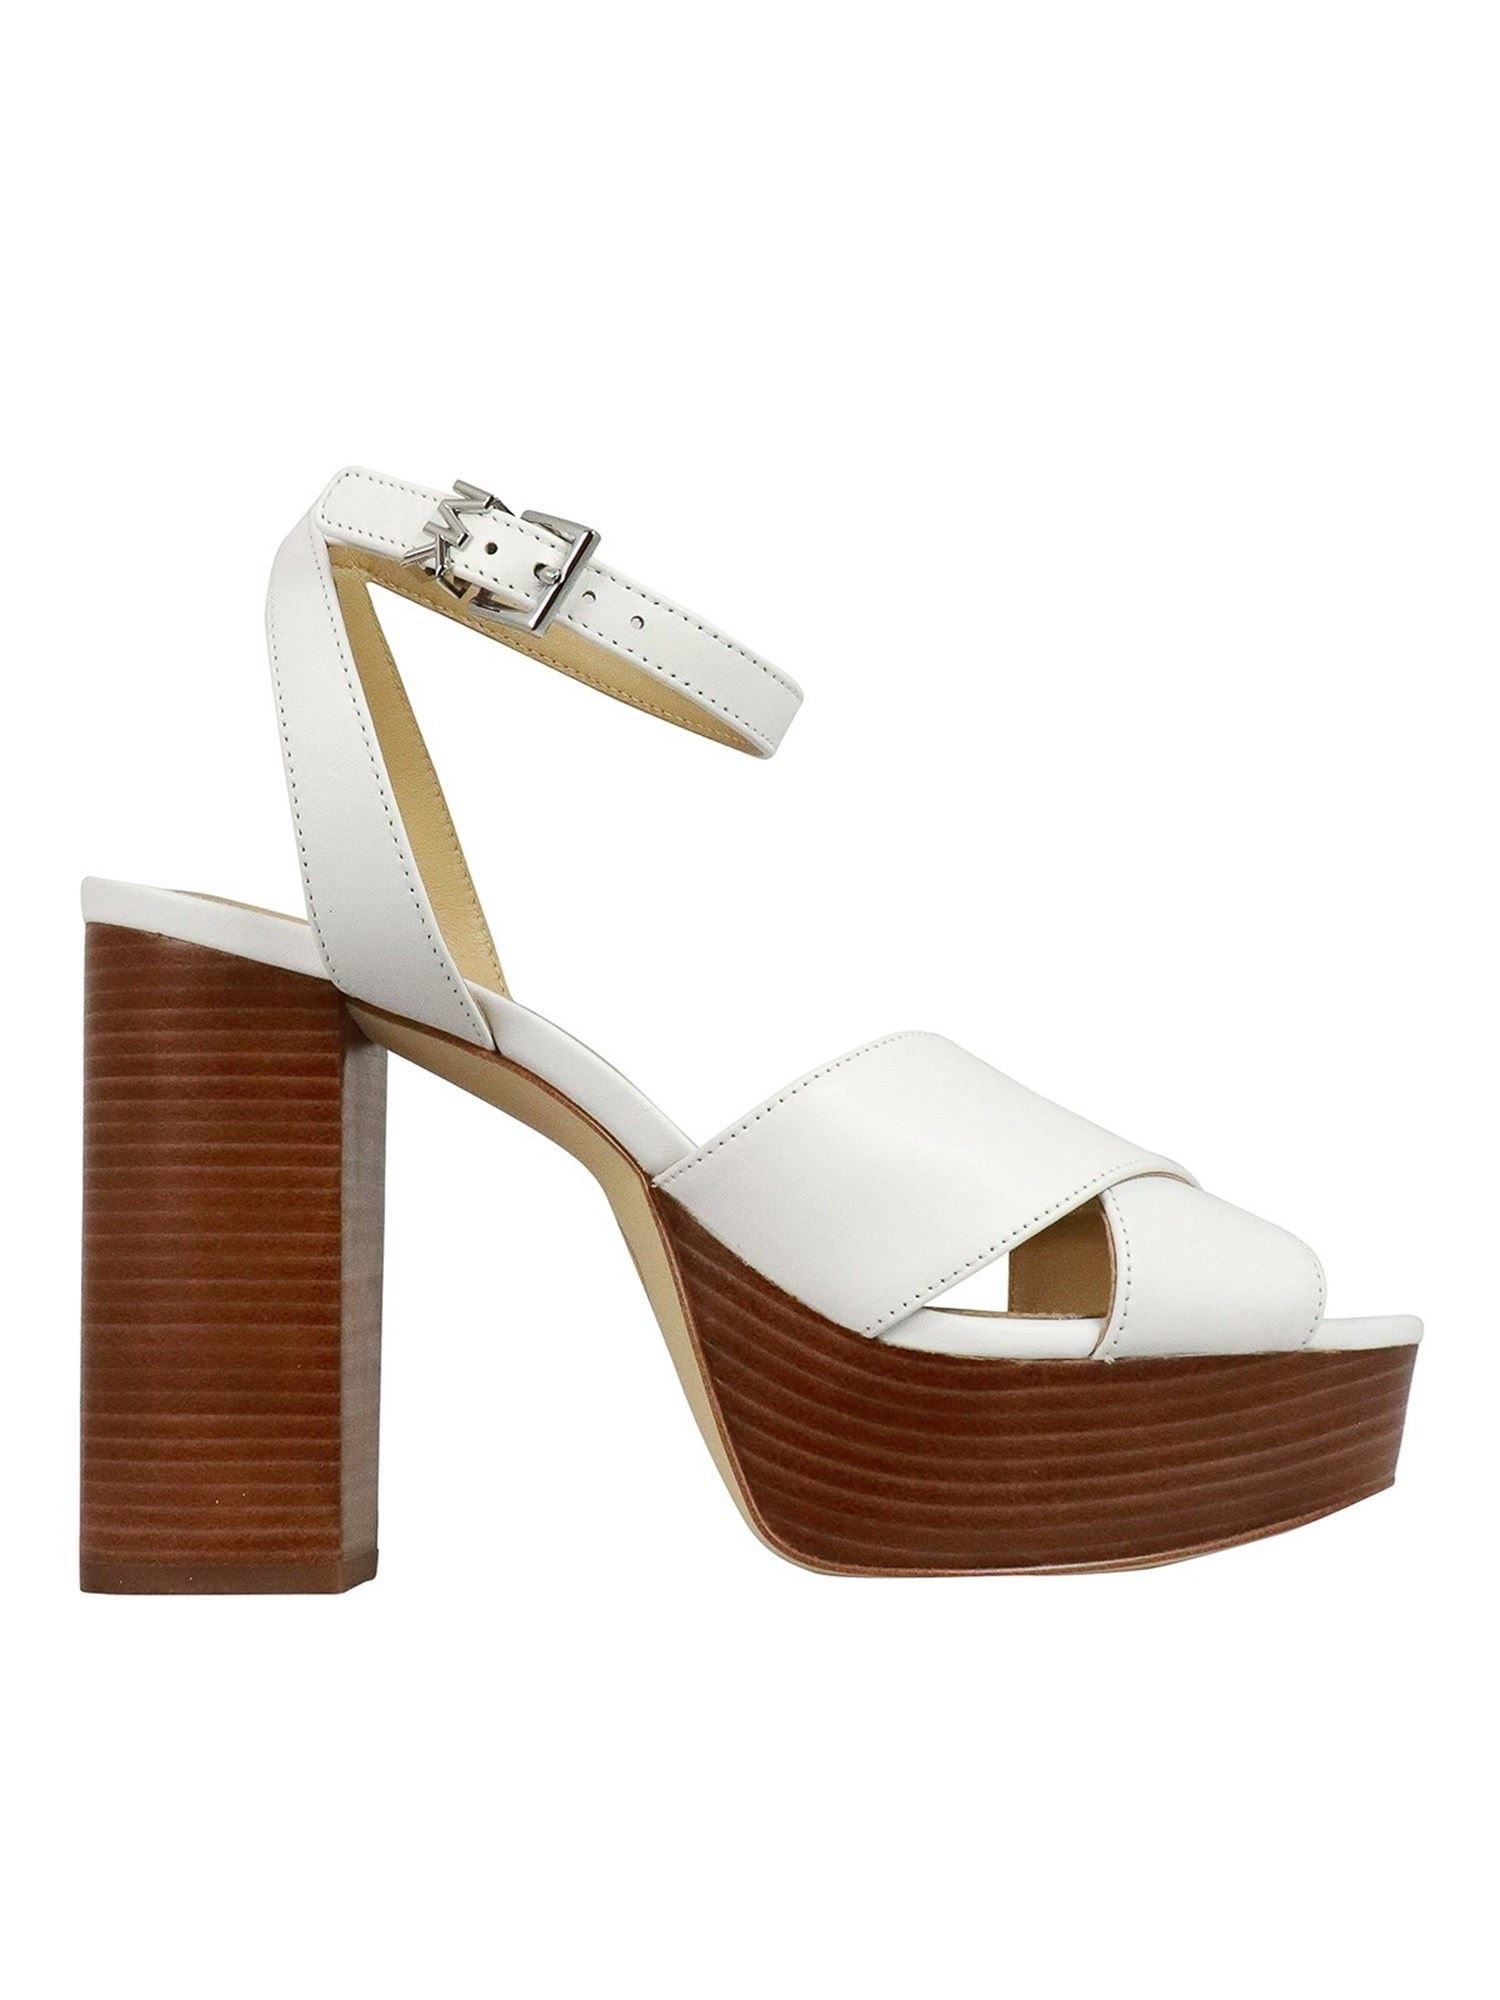 Michael Kors Leathers ODETTE SANDALS IN WHITE